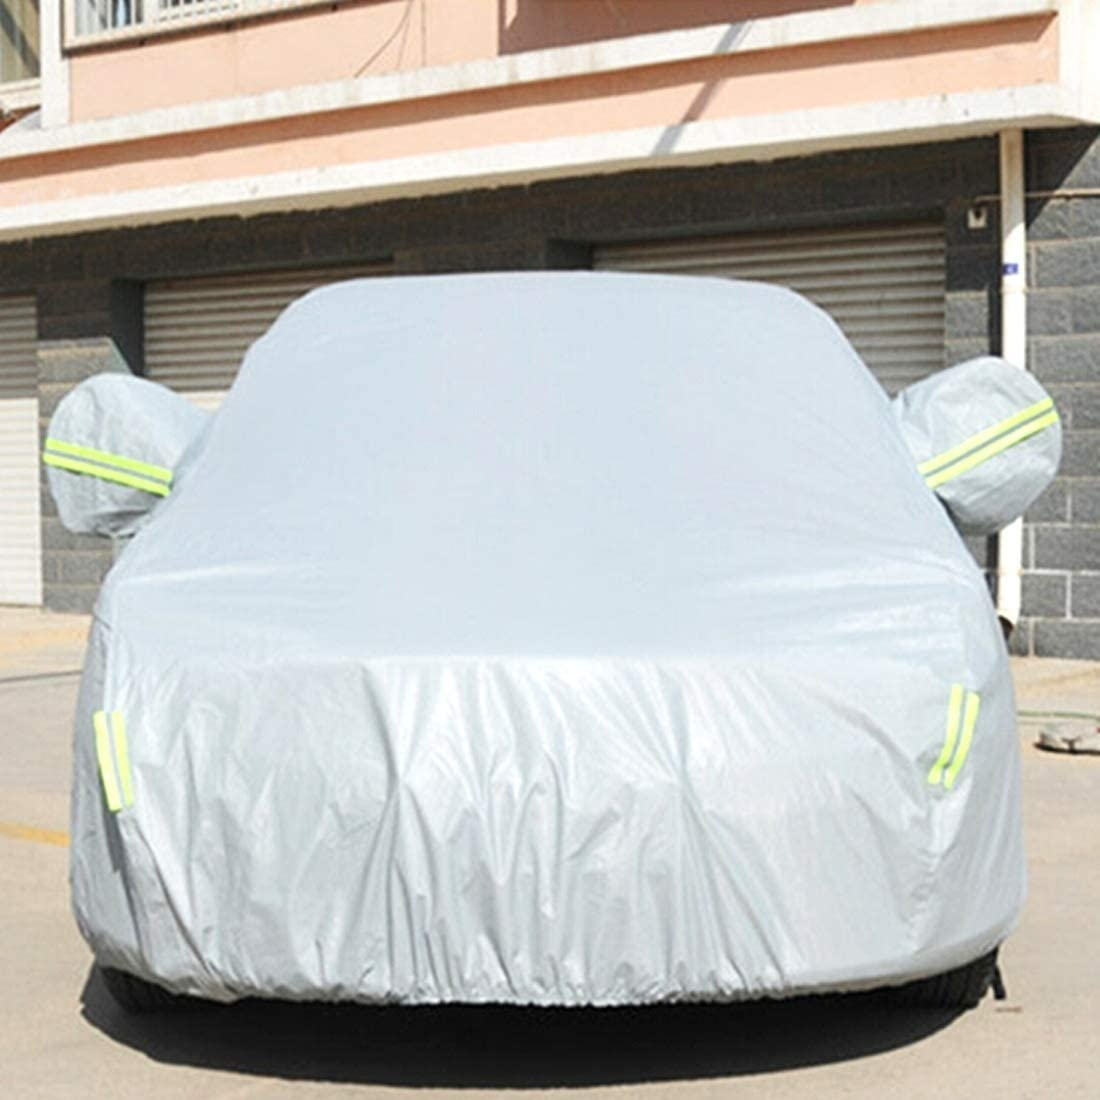 JSANSUI Windshield Cover PVC Anti-Dust Sunproof Sedan Car Cover, with Warning Strips, Fits Cars up to 4.9m(191 inch) in Length